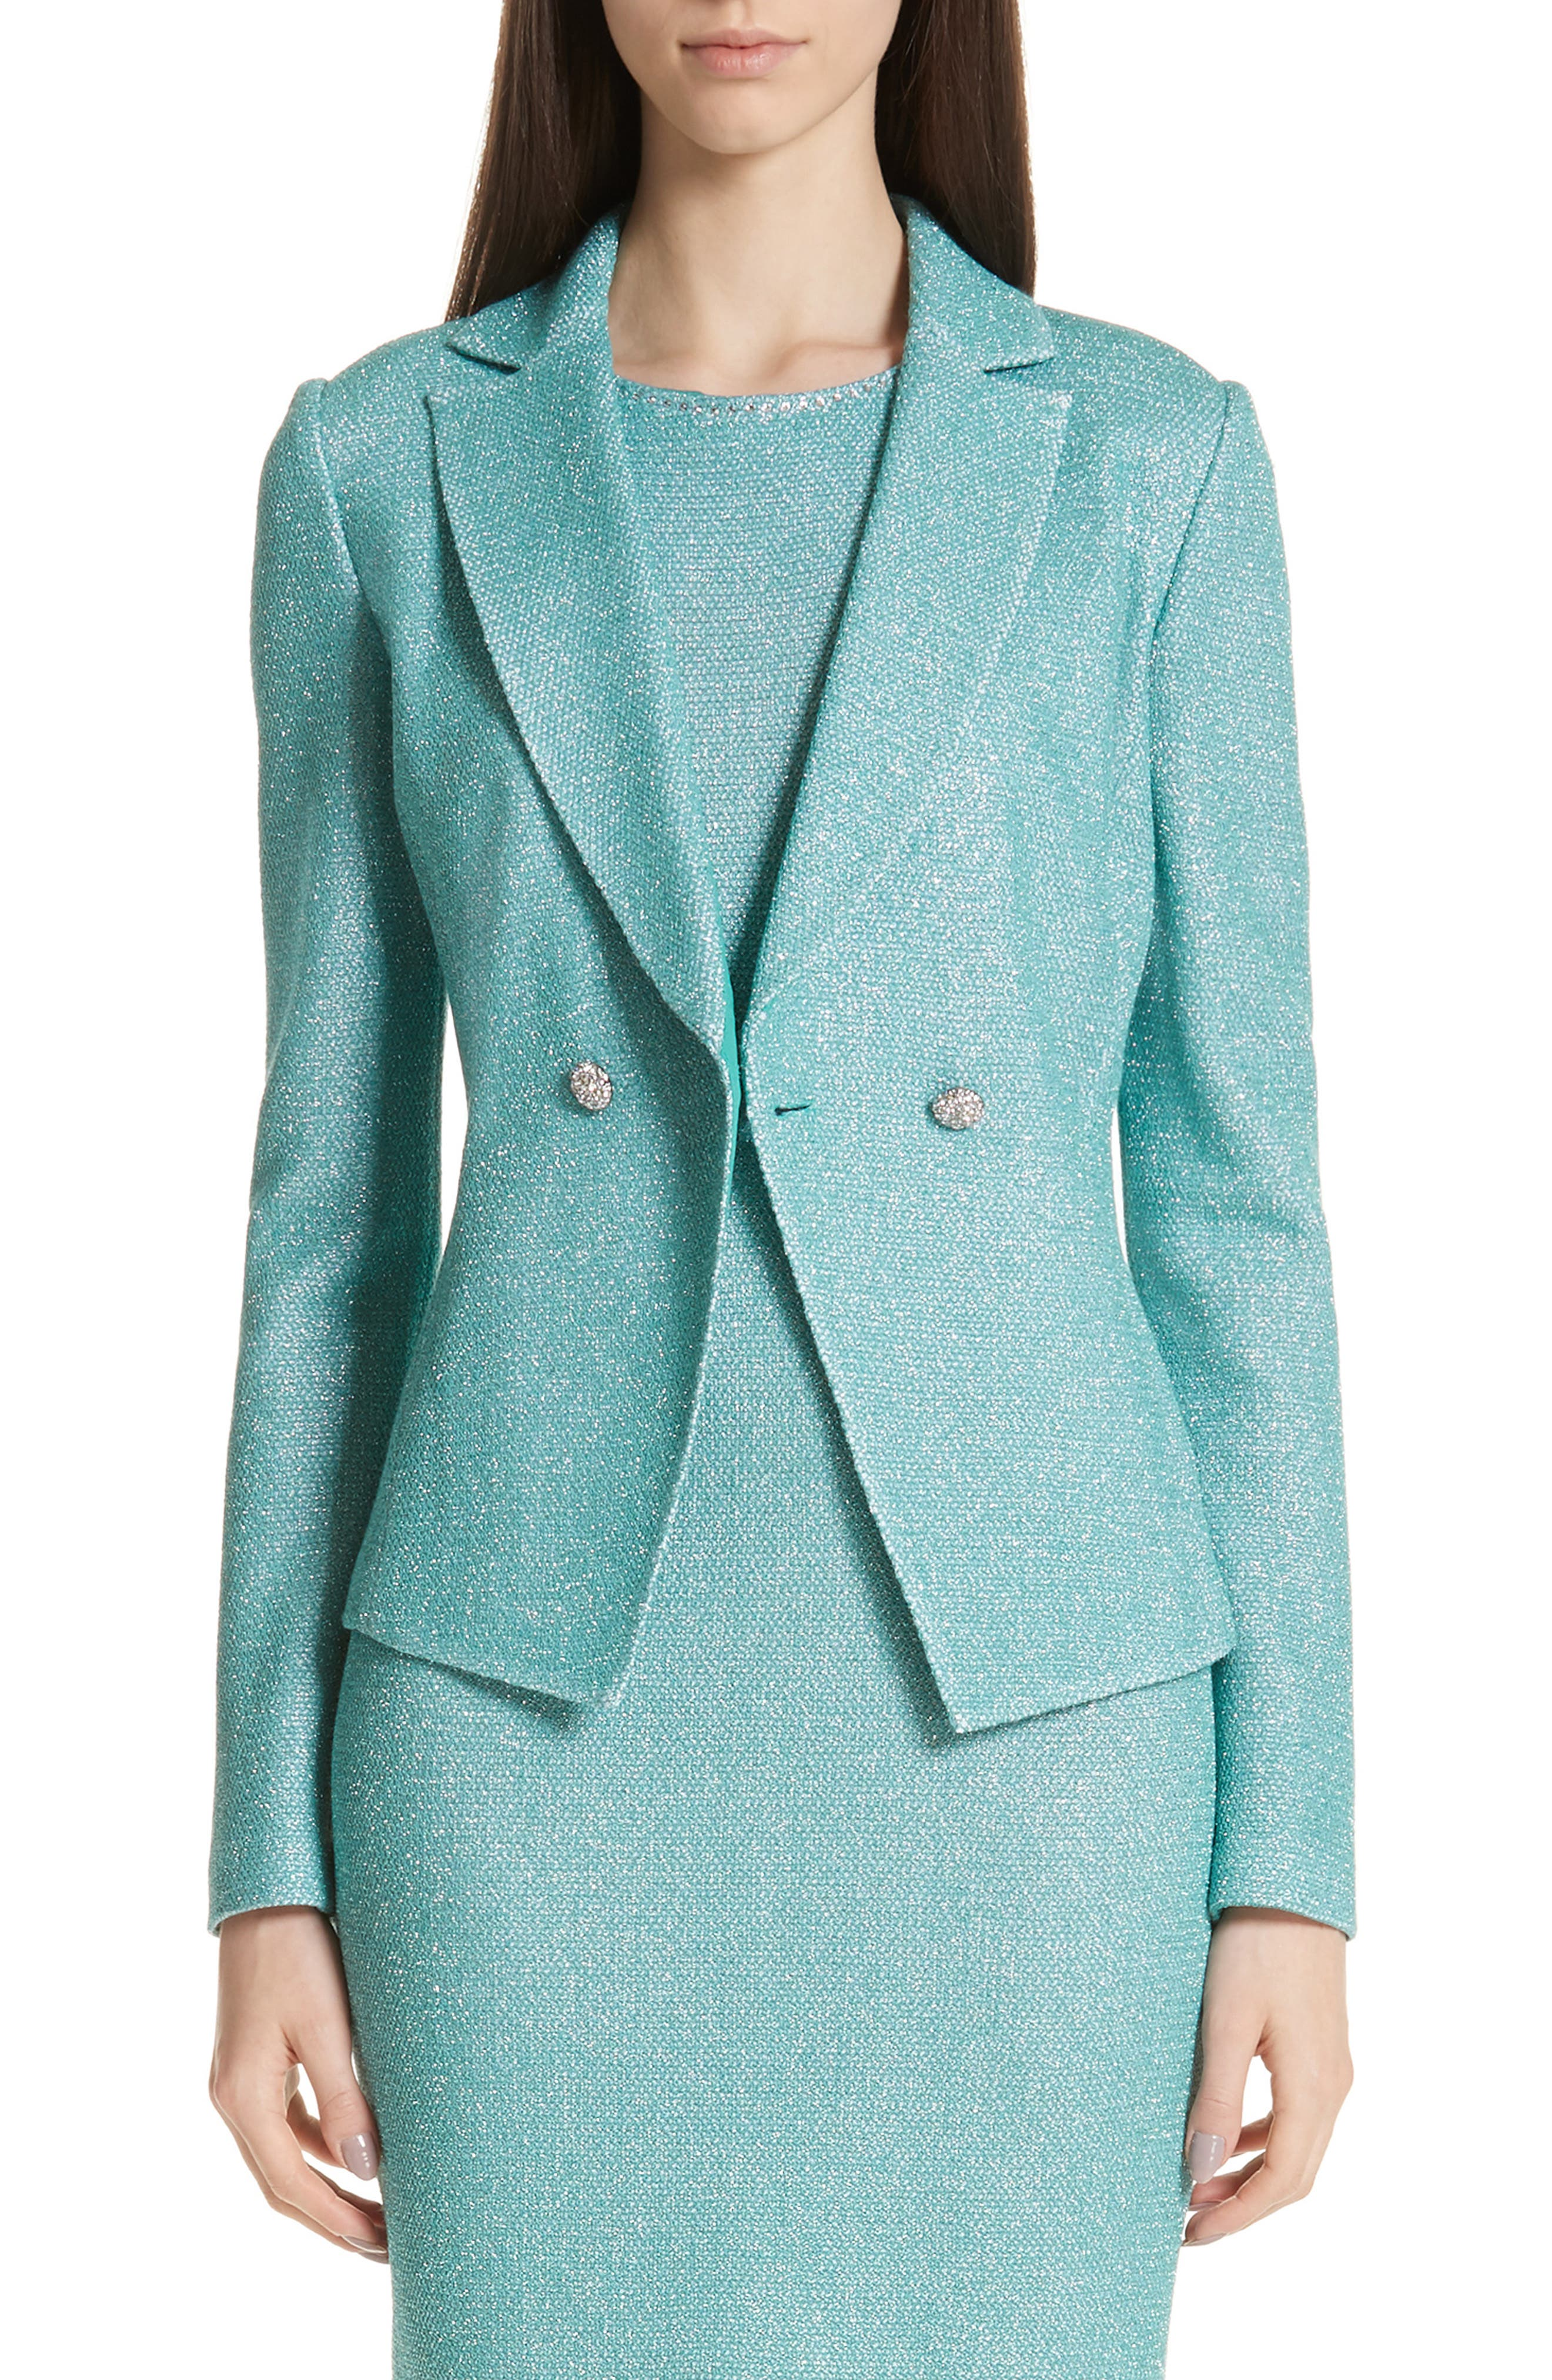 ST. JOHN COLLECTION, Bailey Knit Double Breasted Blazer, Main thumbnail 1, color, LAGOON